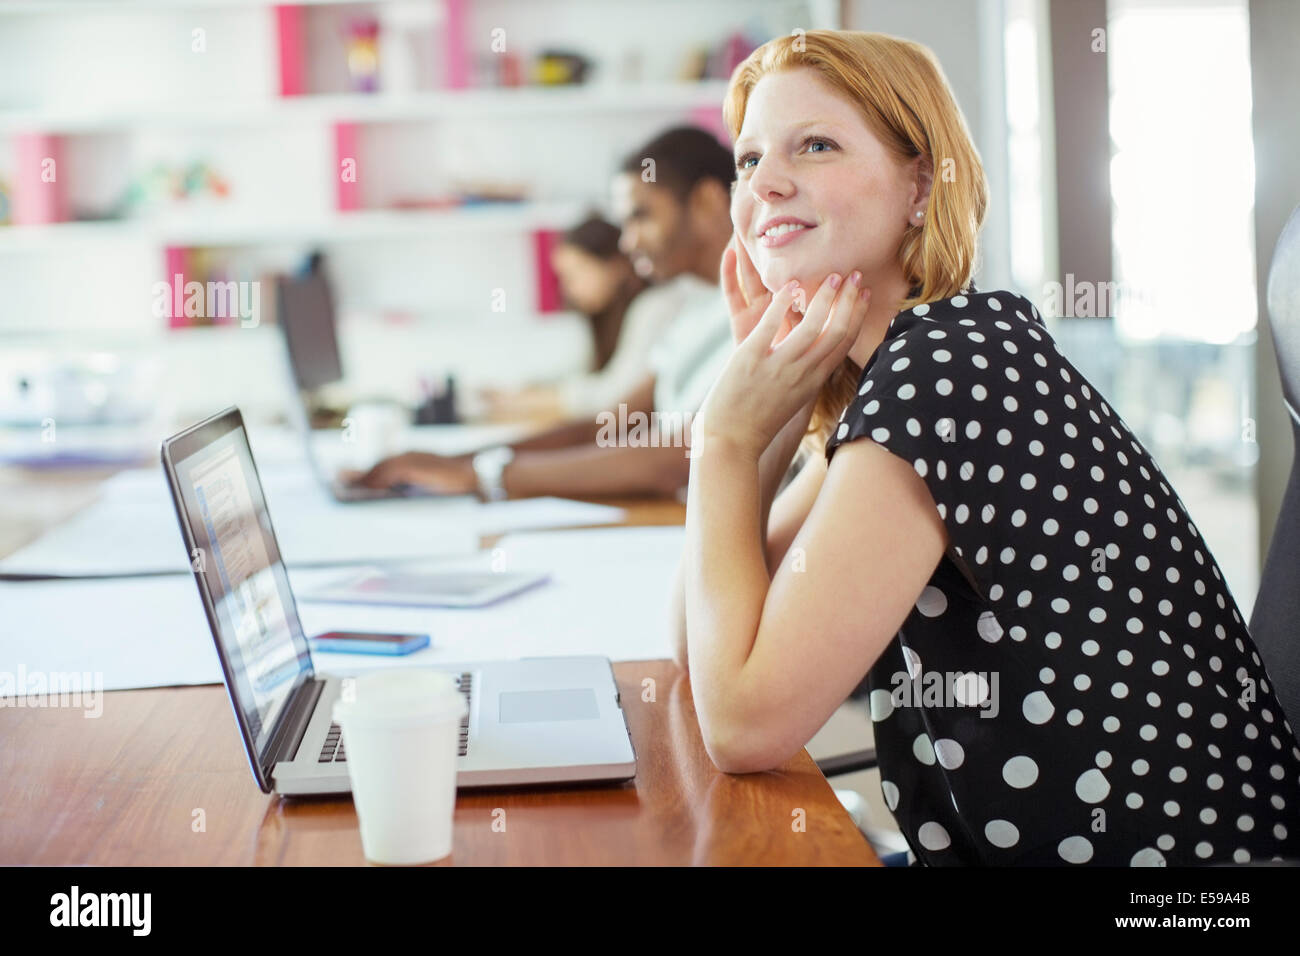 Woman working at conference table in office - Stock Image